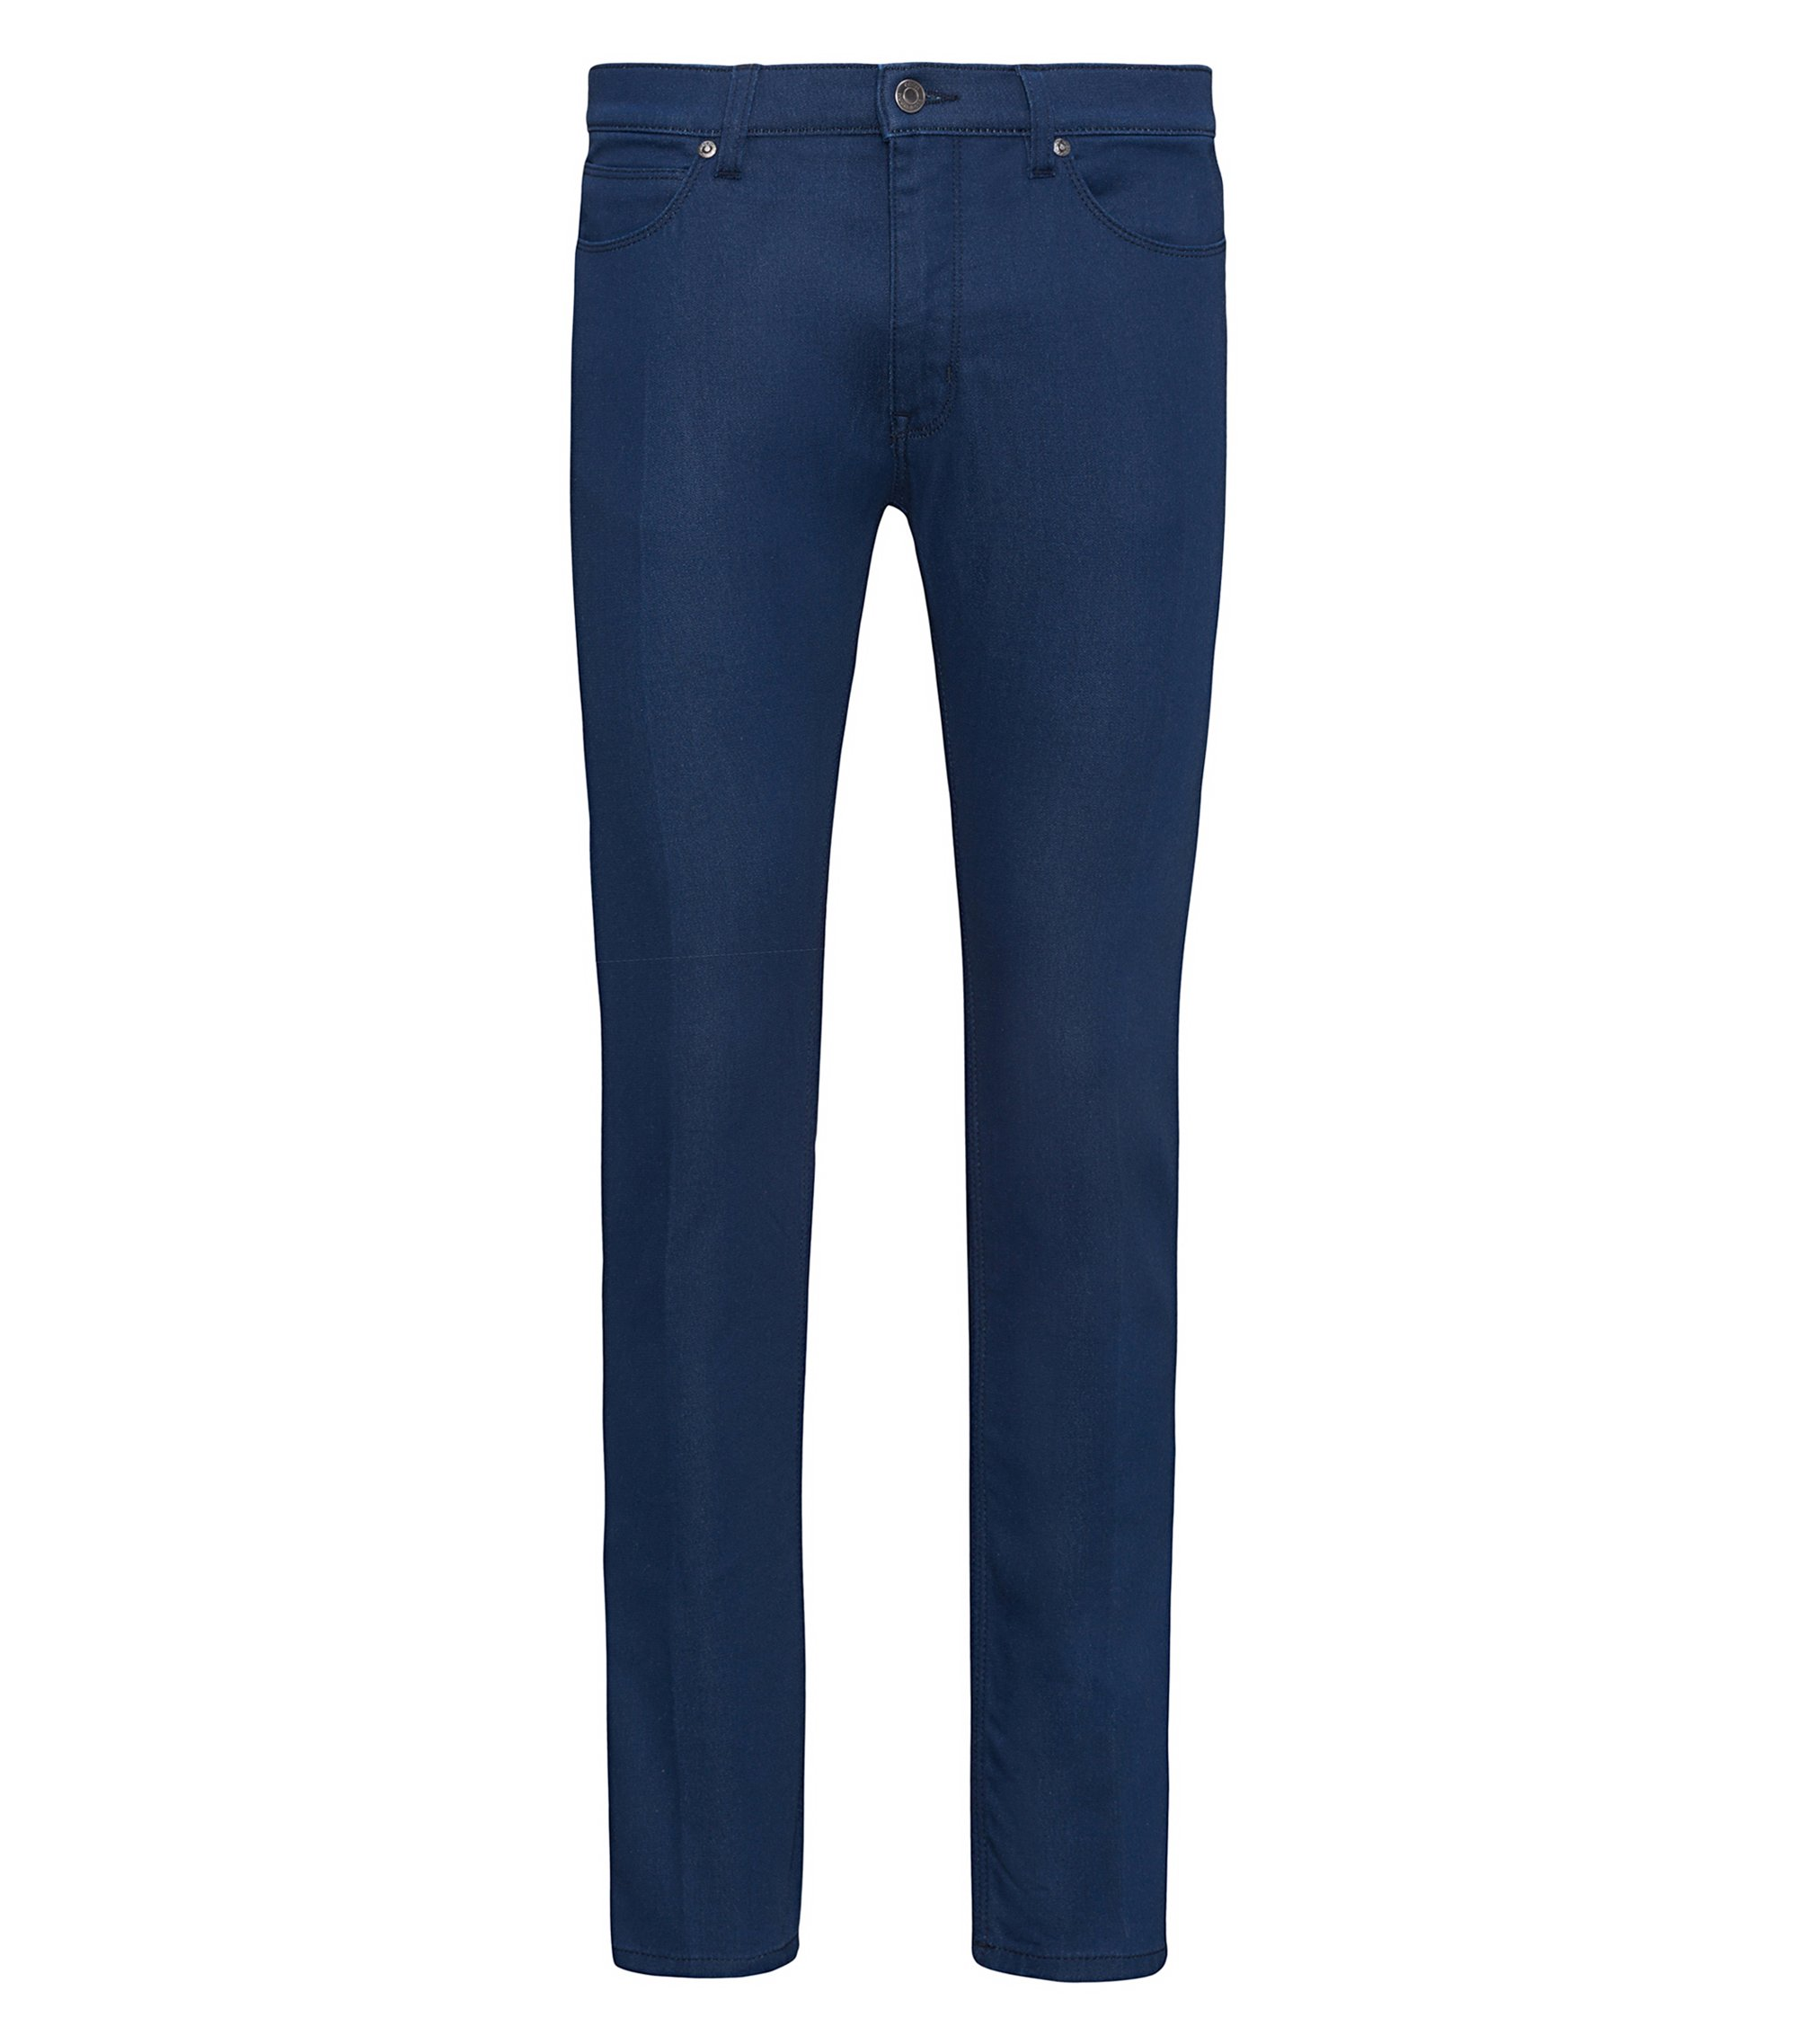 Jeans skinny fit blu medio in denim elasticizzato, Blu scuro